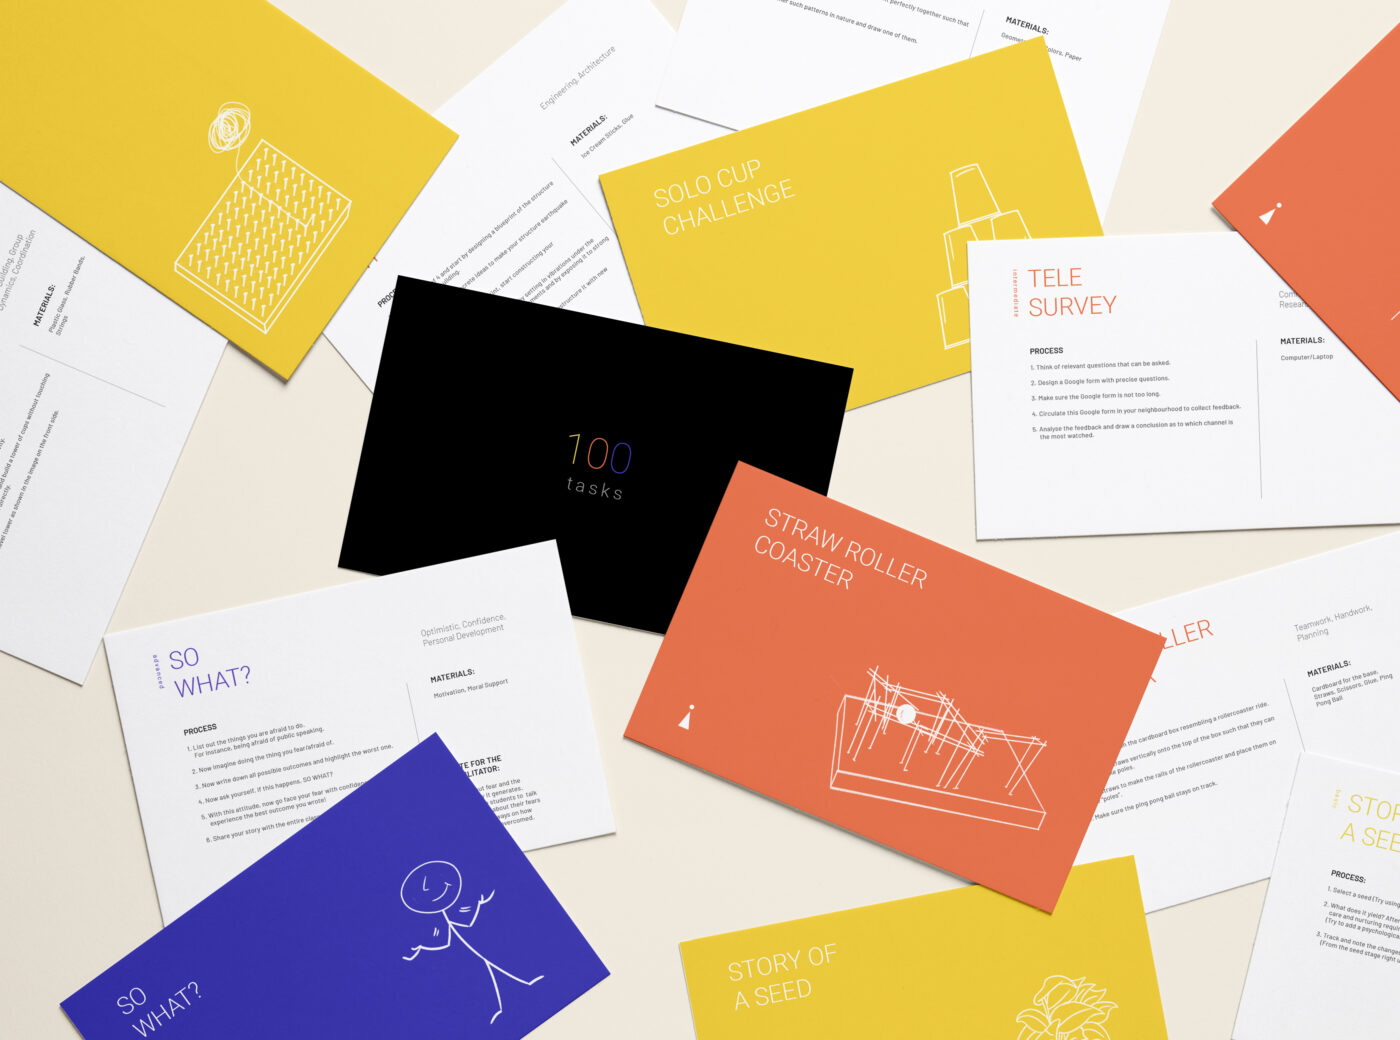 Post Cards describing multiple projects